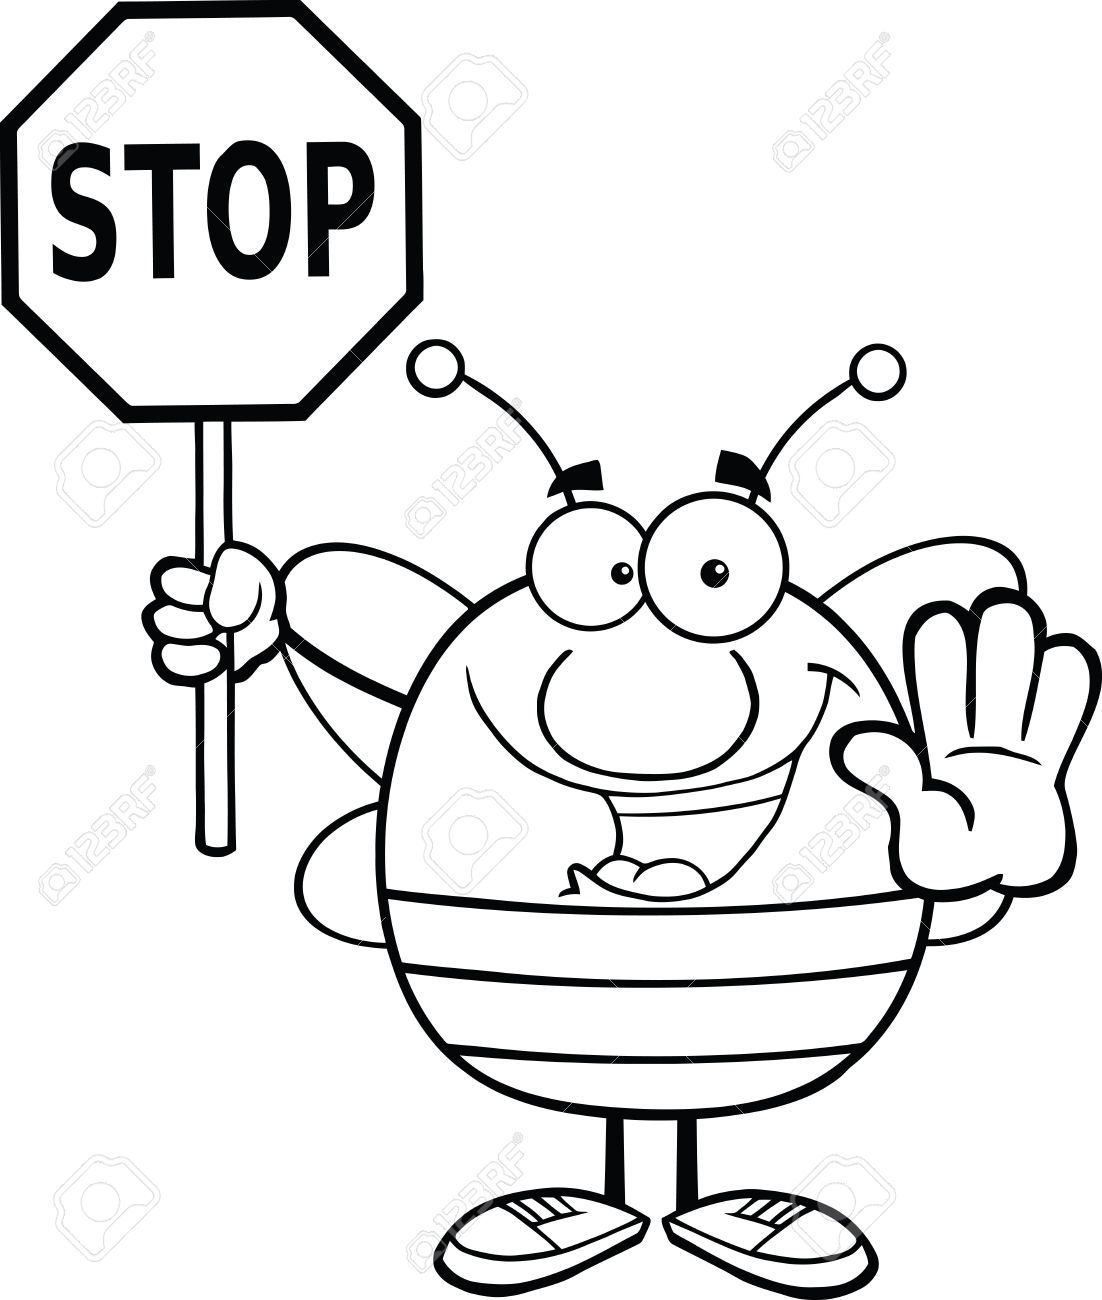 Black And White Pudgy Bee ... Black And -Black And White Pudgy Bee ... Black And White Pudgy Bee ... Stop Sign Clip Art ...-17